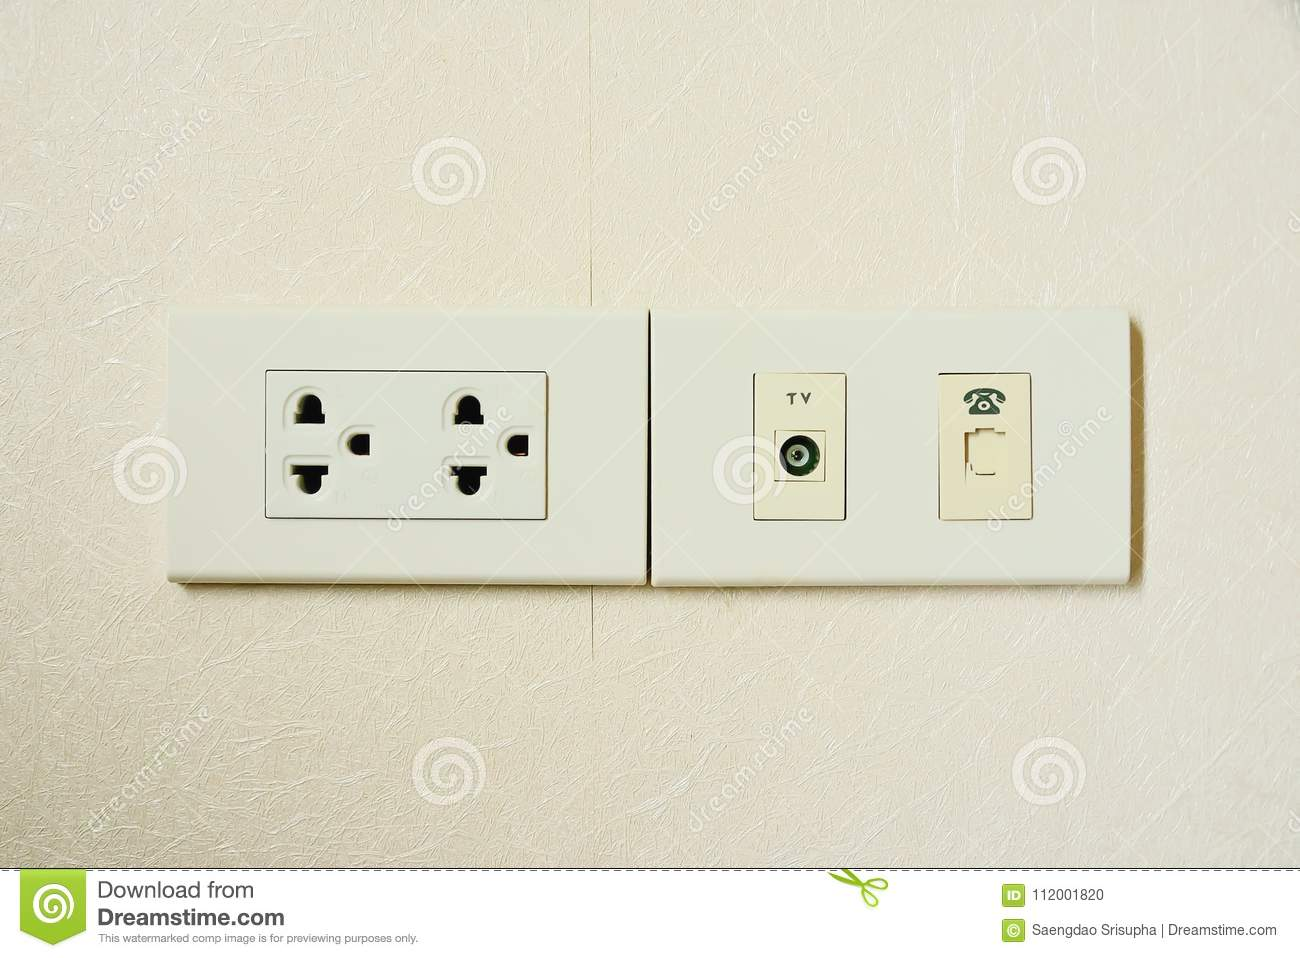 The Electrical Outlet Has Different Characteristics To